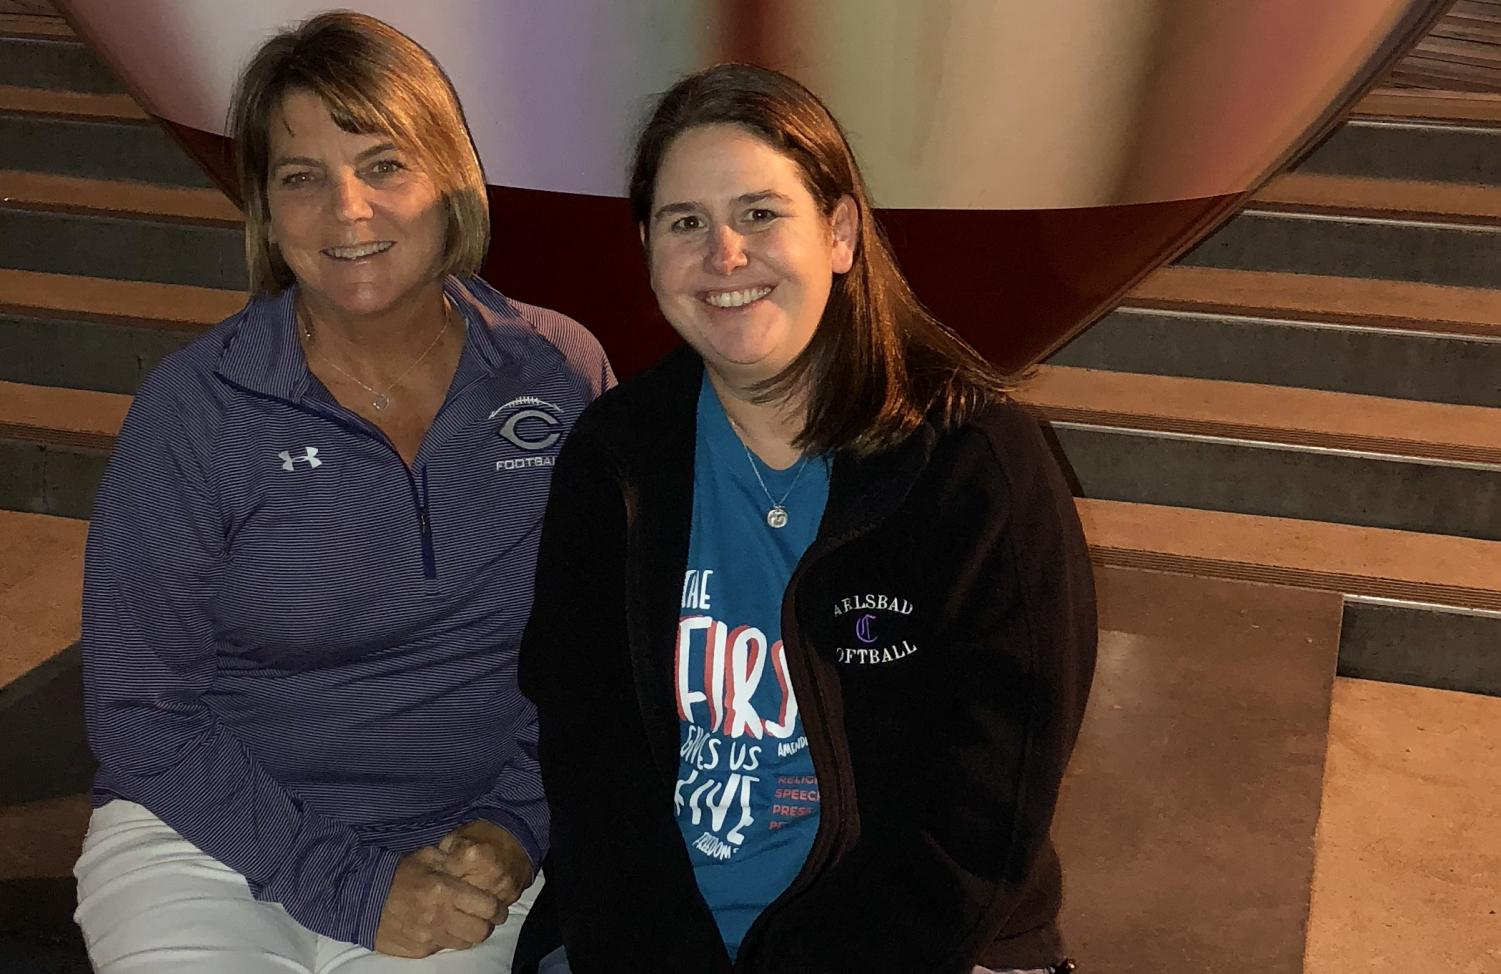 Journalism teacher Mrs. Ryan (right) and school administrator Mrs. Redfield (left) pose for a picture at the spring Journalism Education Association convention in San Francisco, CA. Mrs. Ryan supervised her students and Mrs. Redfield chaperoned.